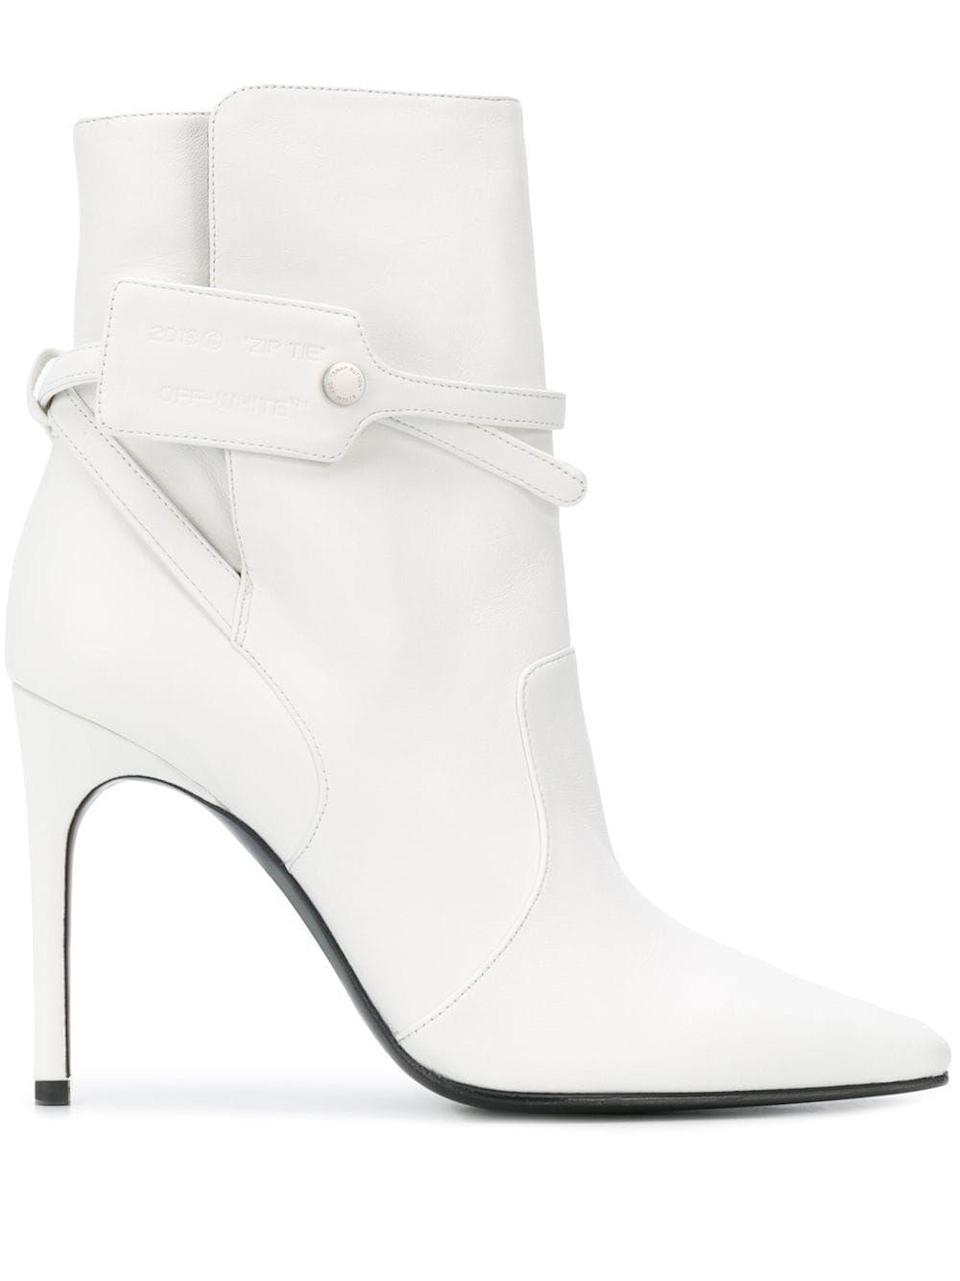 """<p><strong>Off-White</strong></p><p>farfetch.com</p><p><strong>$570.00</strong></p><p><a href=""""https://go.redirectingat.com?id=74968X1596630&url=https%3A%2F%2Fwww.farfetch.com%2Fshopping%2Fwomen%2Foff-white-security-tag-ankle-boots-item-15353238.aspx&sref=https%3A%2F%2Fwww.harpersbazaar.com%2Ffashion%2Ftrends%2Fg7958%2Fhow-to-wear-ankle-boots%2F"""" rel=""""nofollow noopener"""" target=""""_blank"""" data-ylk=""""slk:Shop Now"""" class=""""link rapid-noclick-resp"""">Shop Now</a></p><p>Pair Off-White's white bootie effortlessly with all your fall dresses.</p>"""